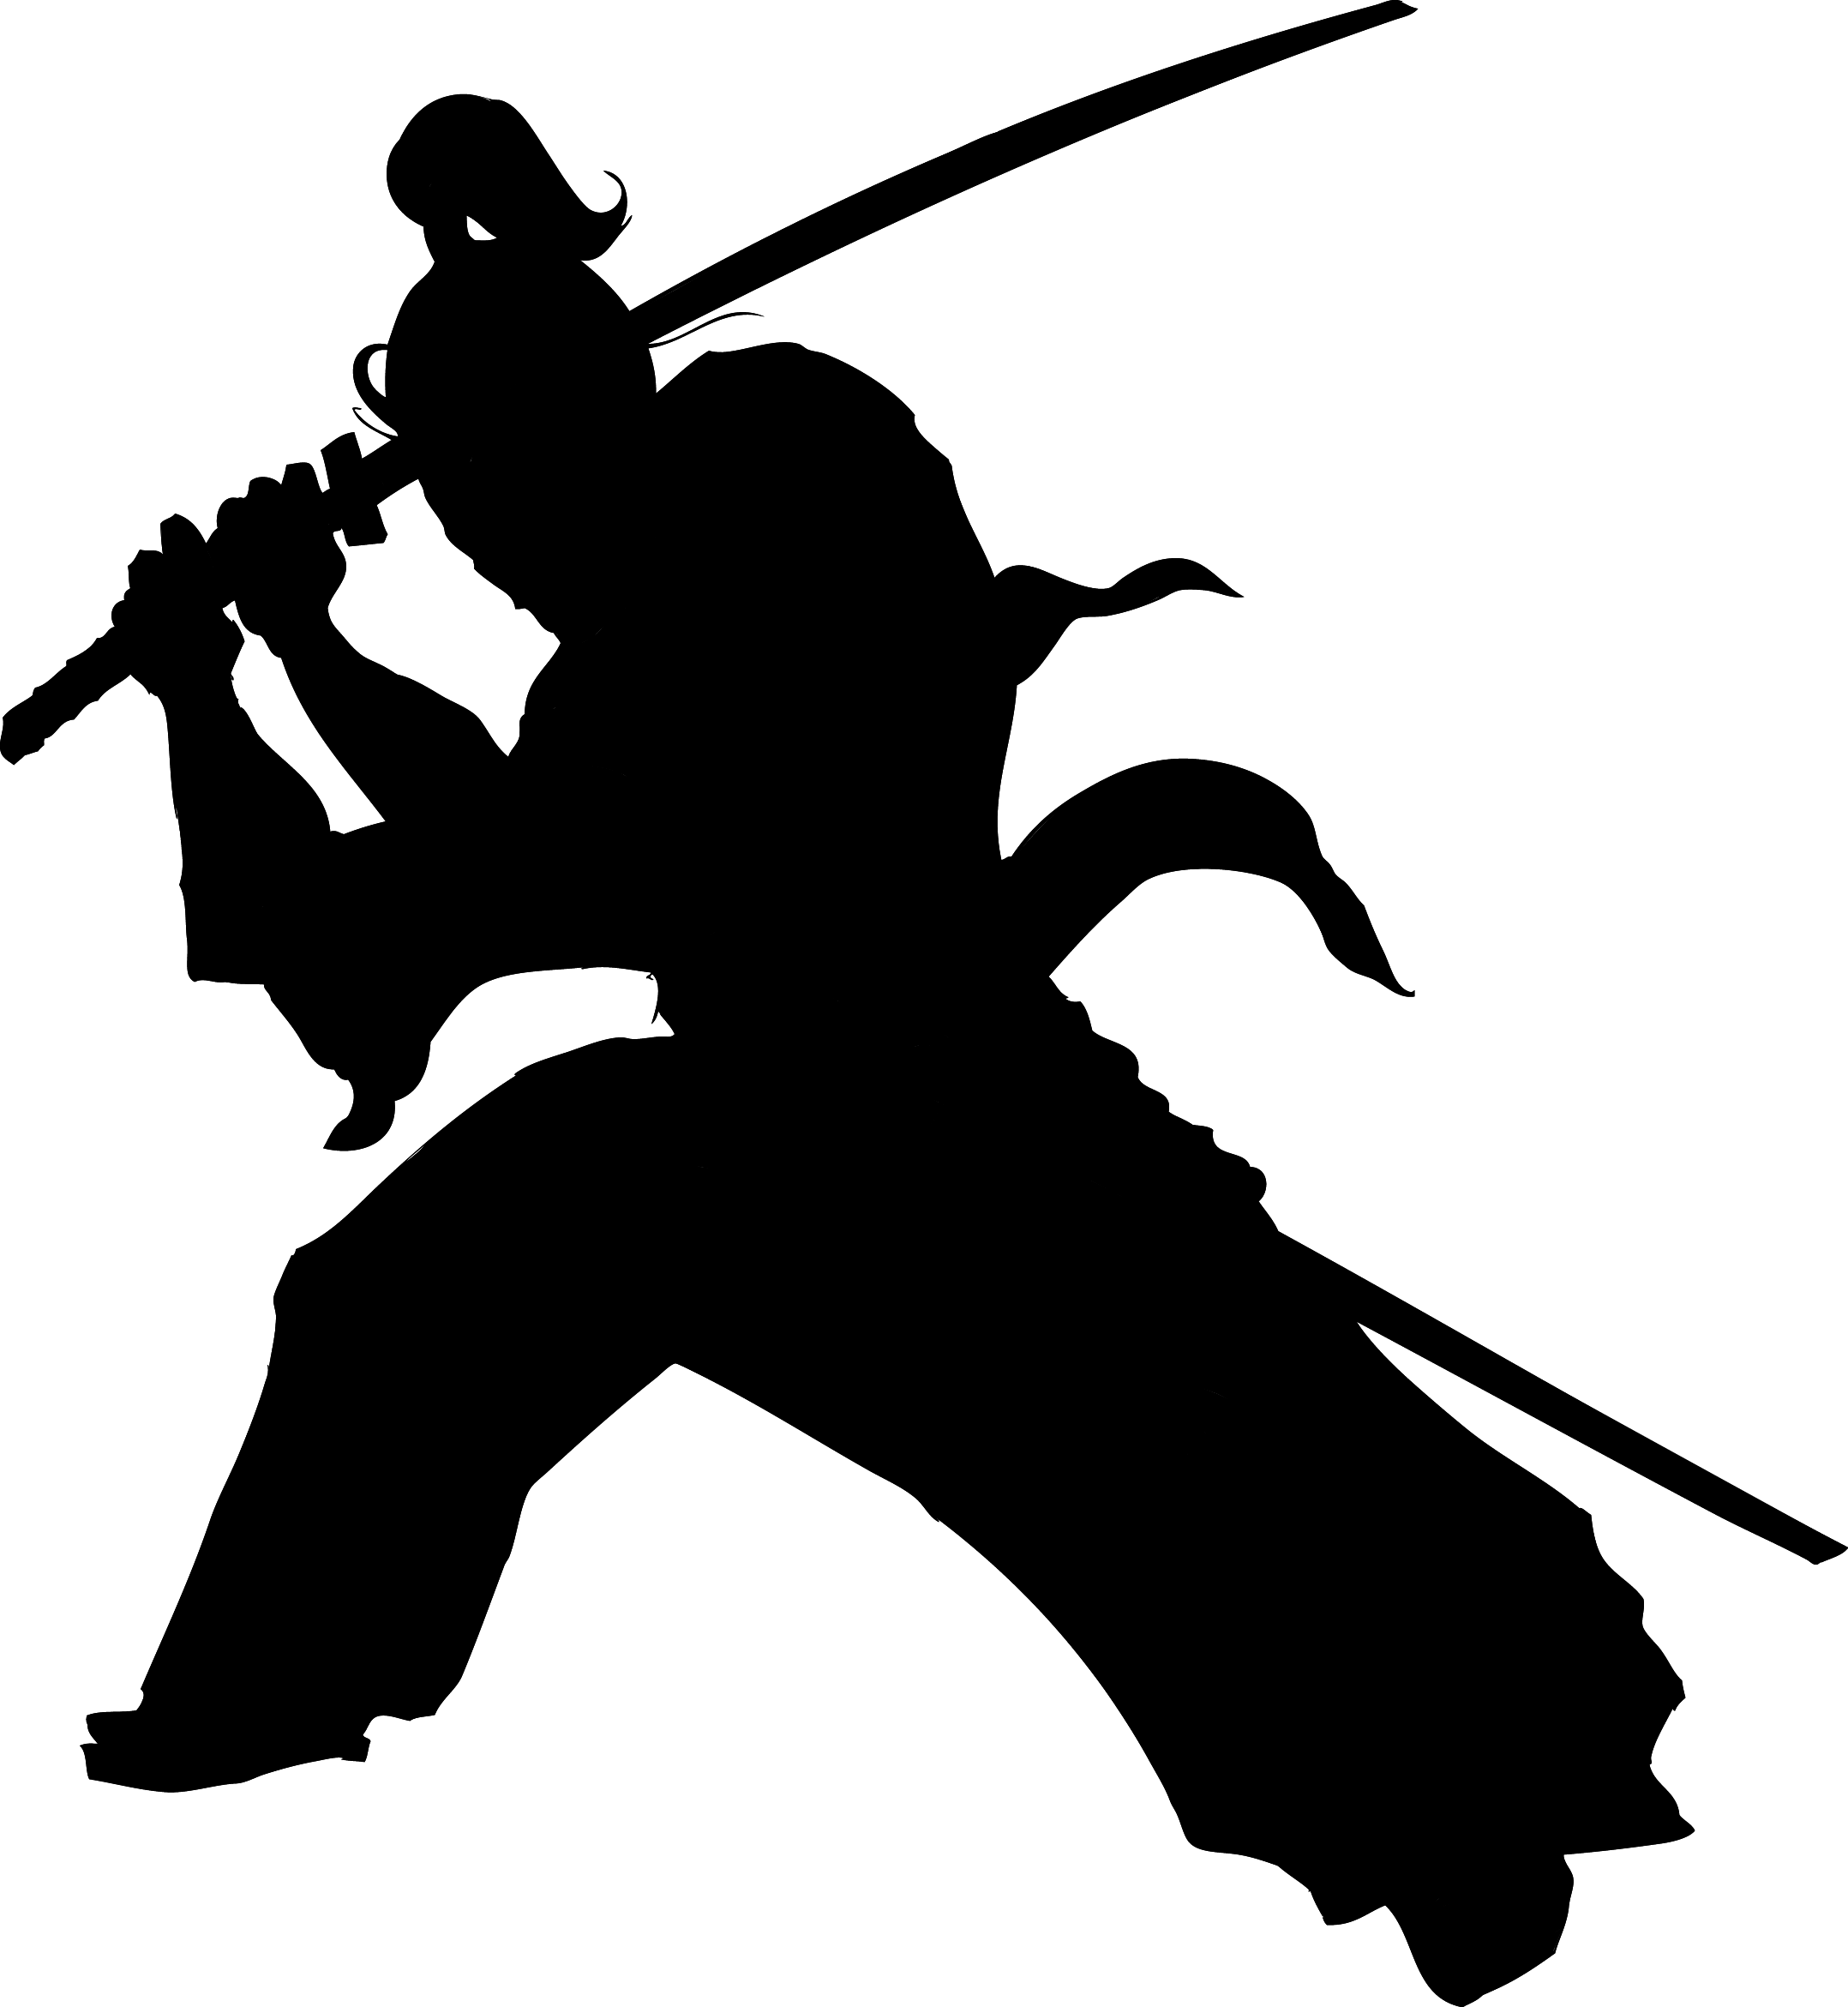 Free Samurai Clipart transparent, Download Free Clip Art on Owips.com.